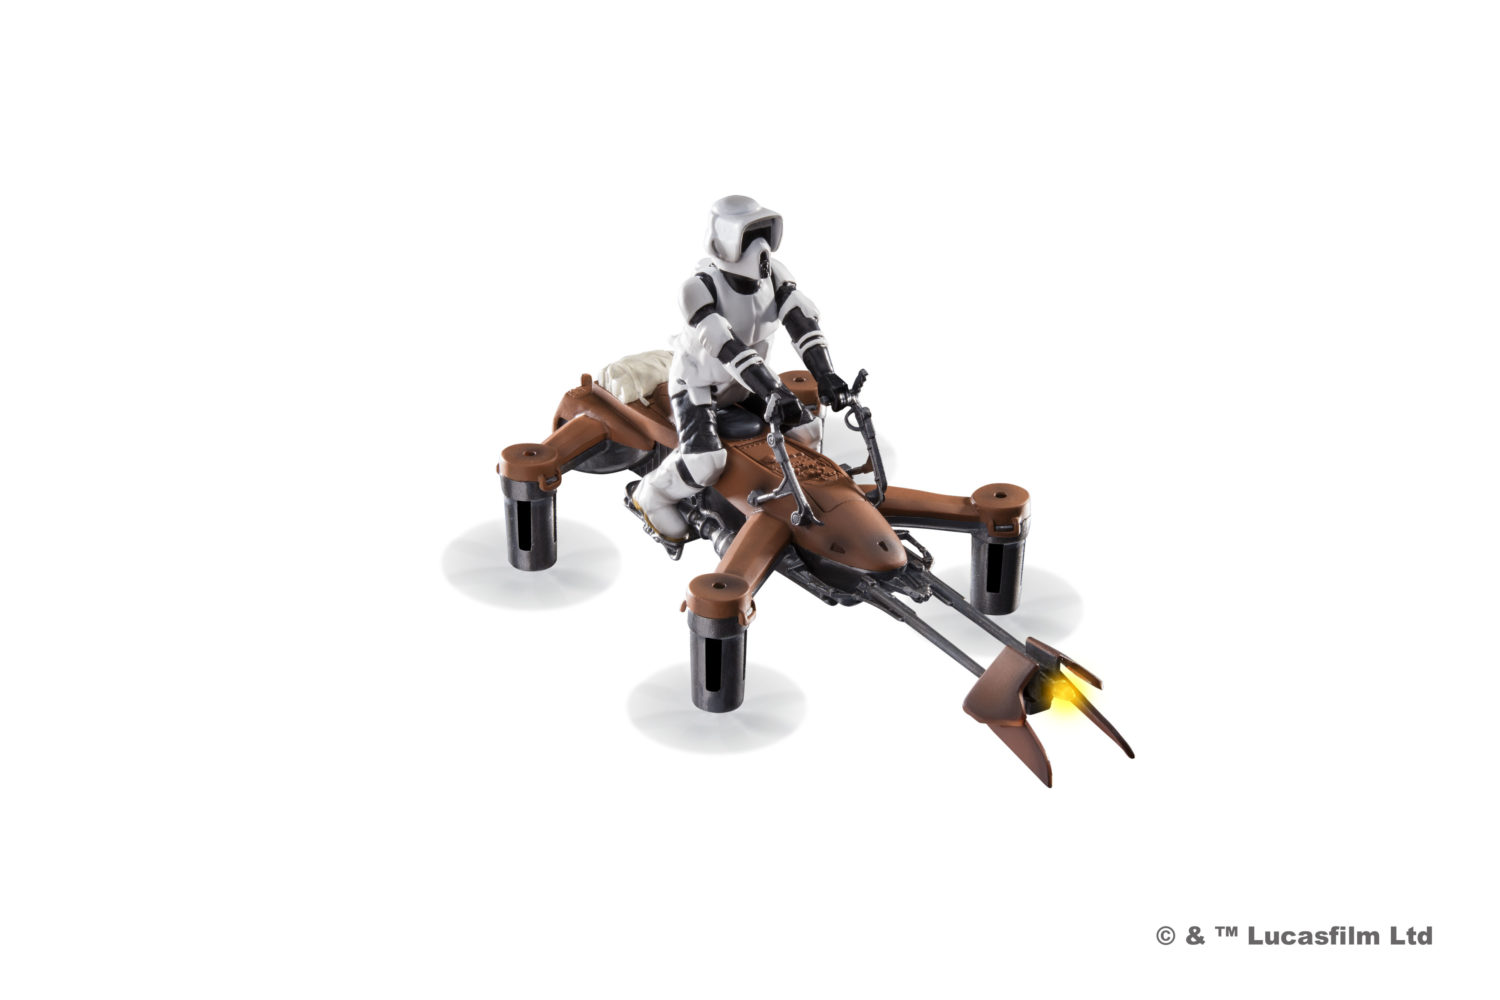 1-74-z-speeder-bike-propel-battle-drones-star-wars